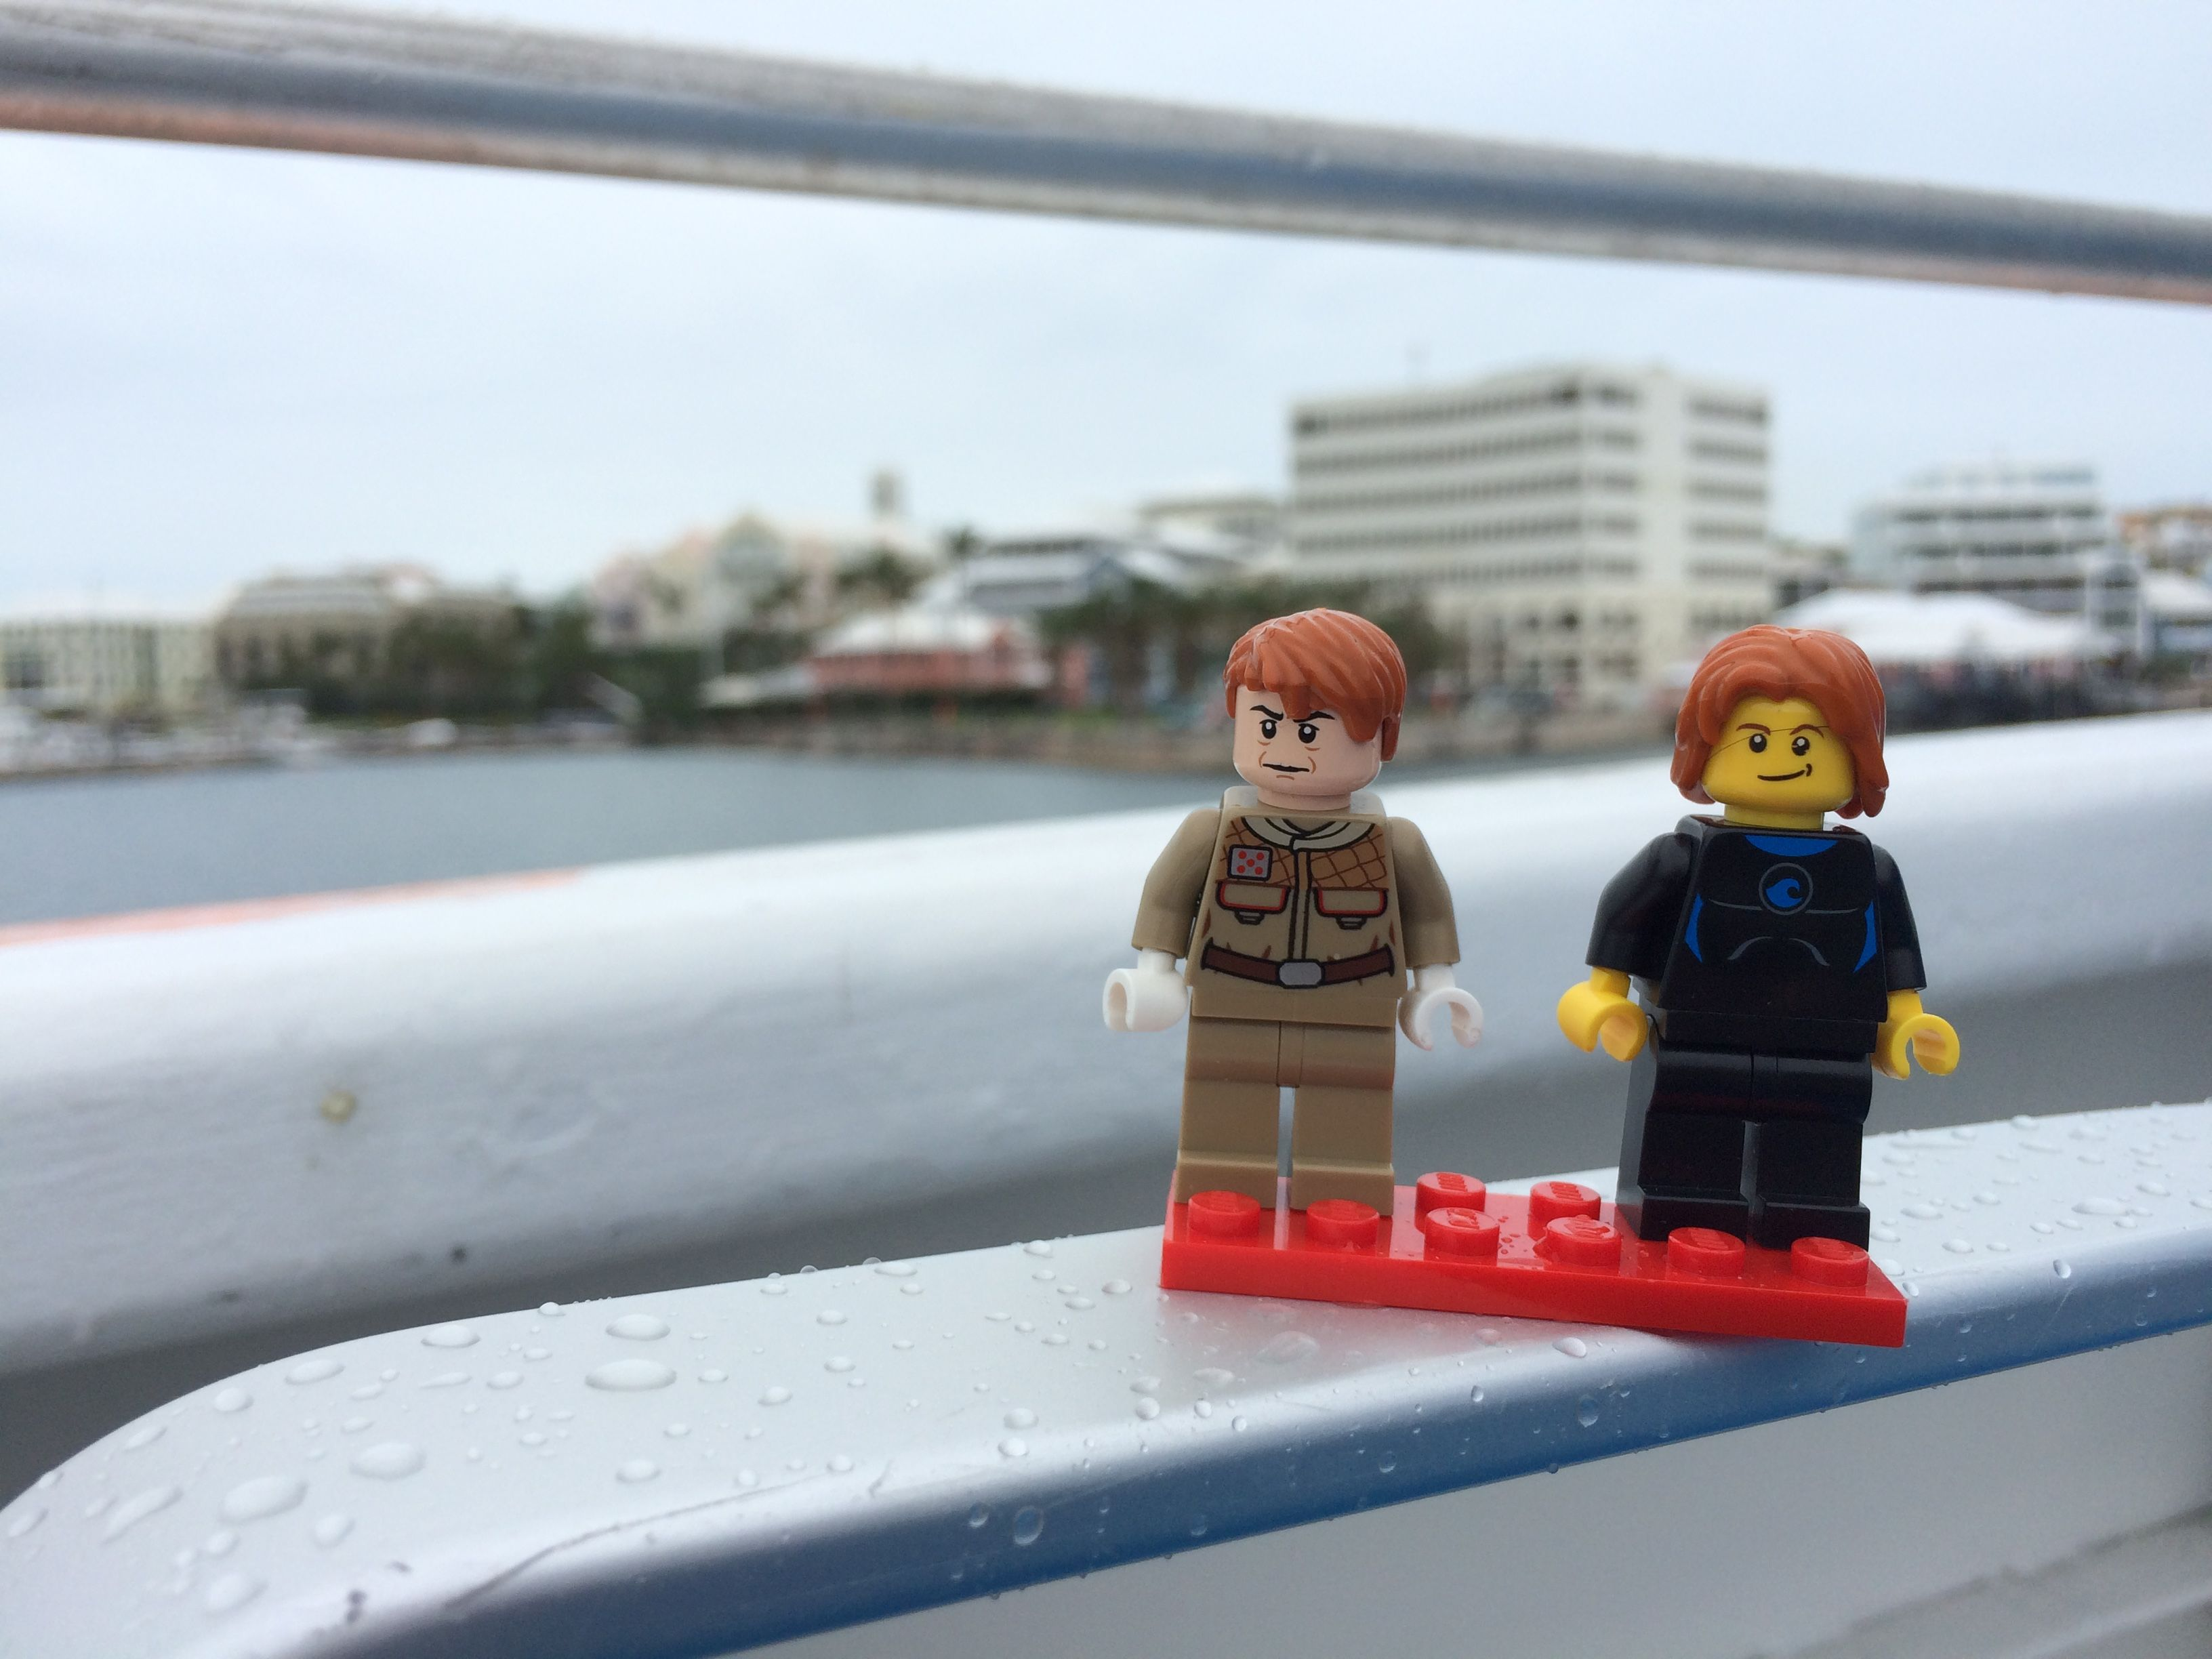 minifigs on a ferry